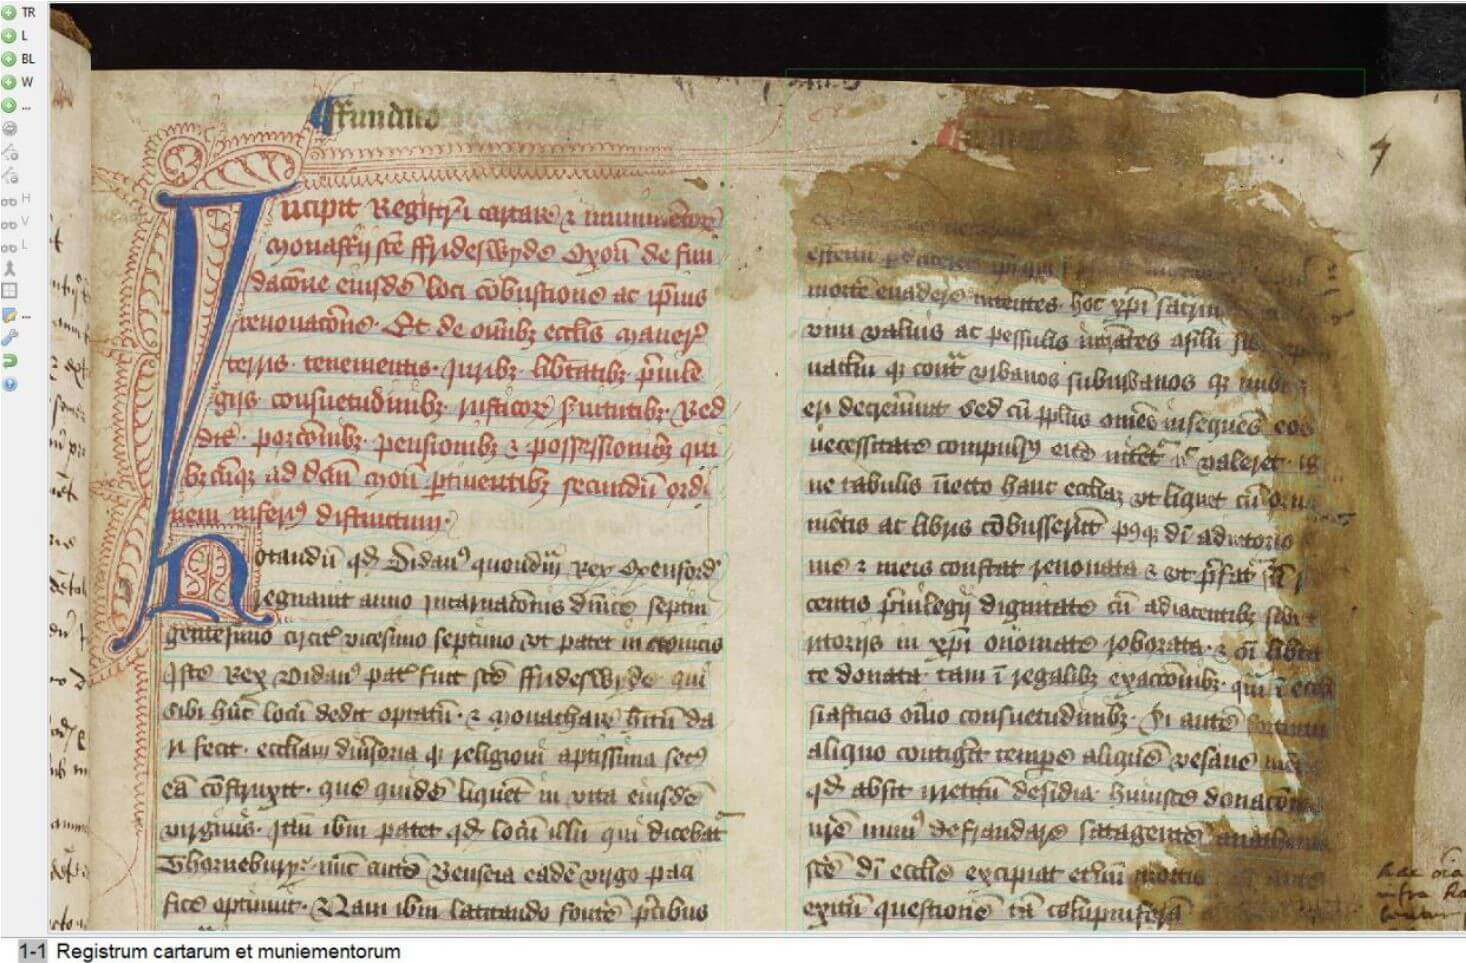 Machine Reading Medieval Latin Texts: the Launch of the UCL/Toronto Transkribus model